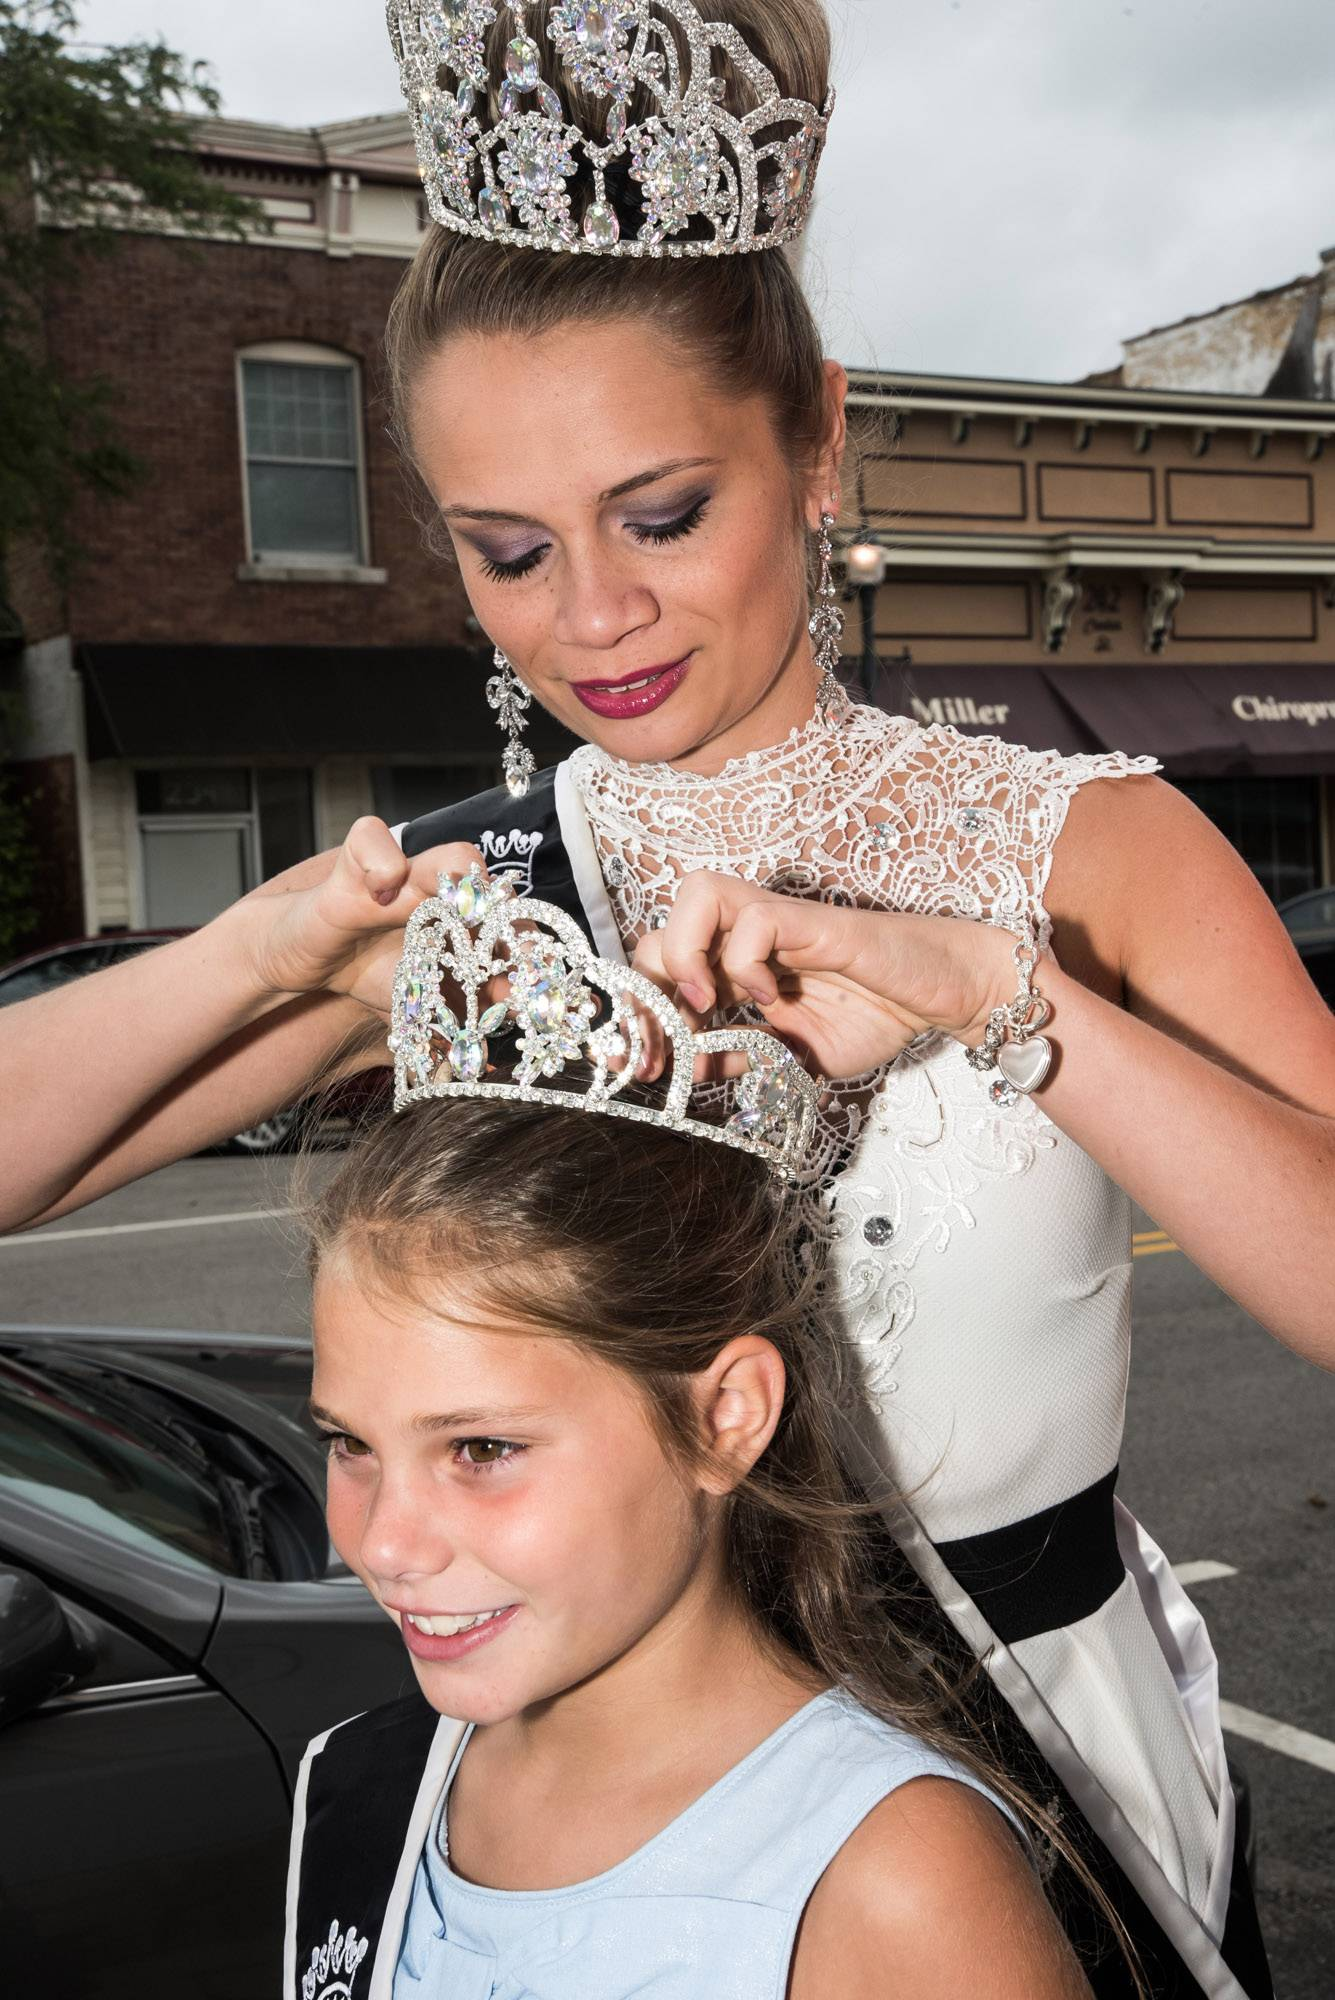 Miss Grayslake Jessi Bryson, 20, gives Little Miss Grayslake Sarah Bianchi, 9, some last-minute tiara help ahead of Summer Days festivities Saturday.